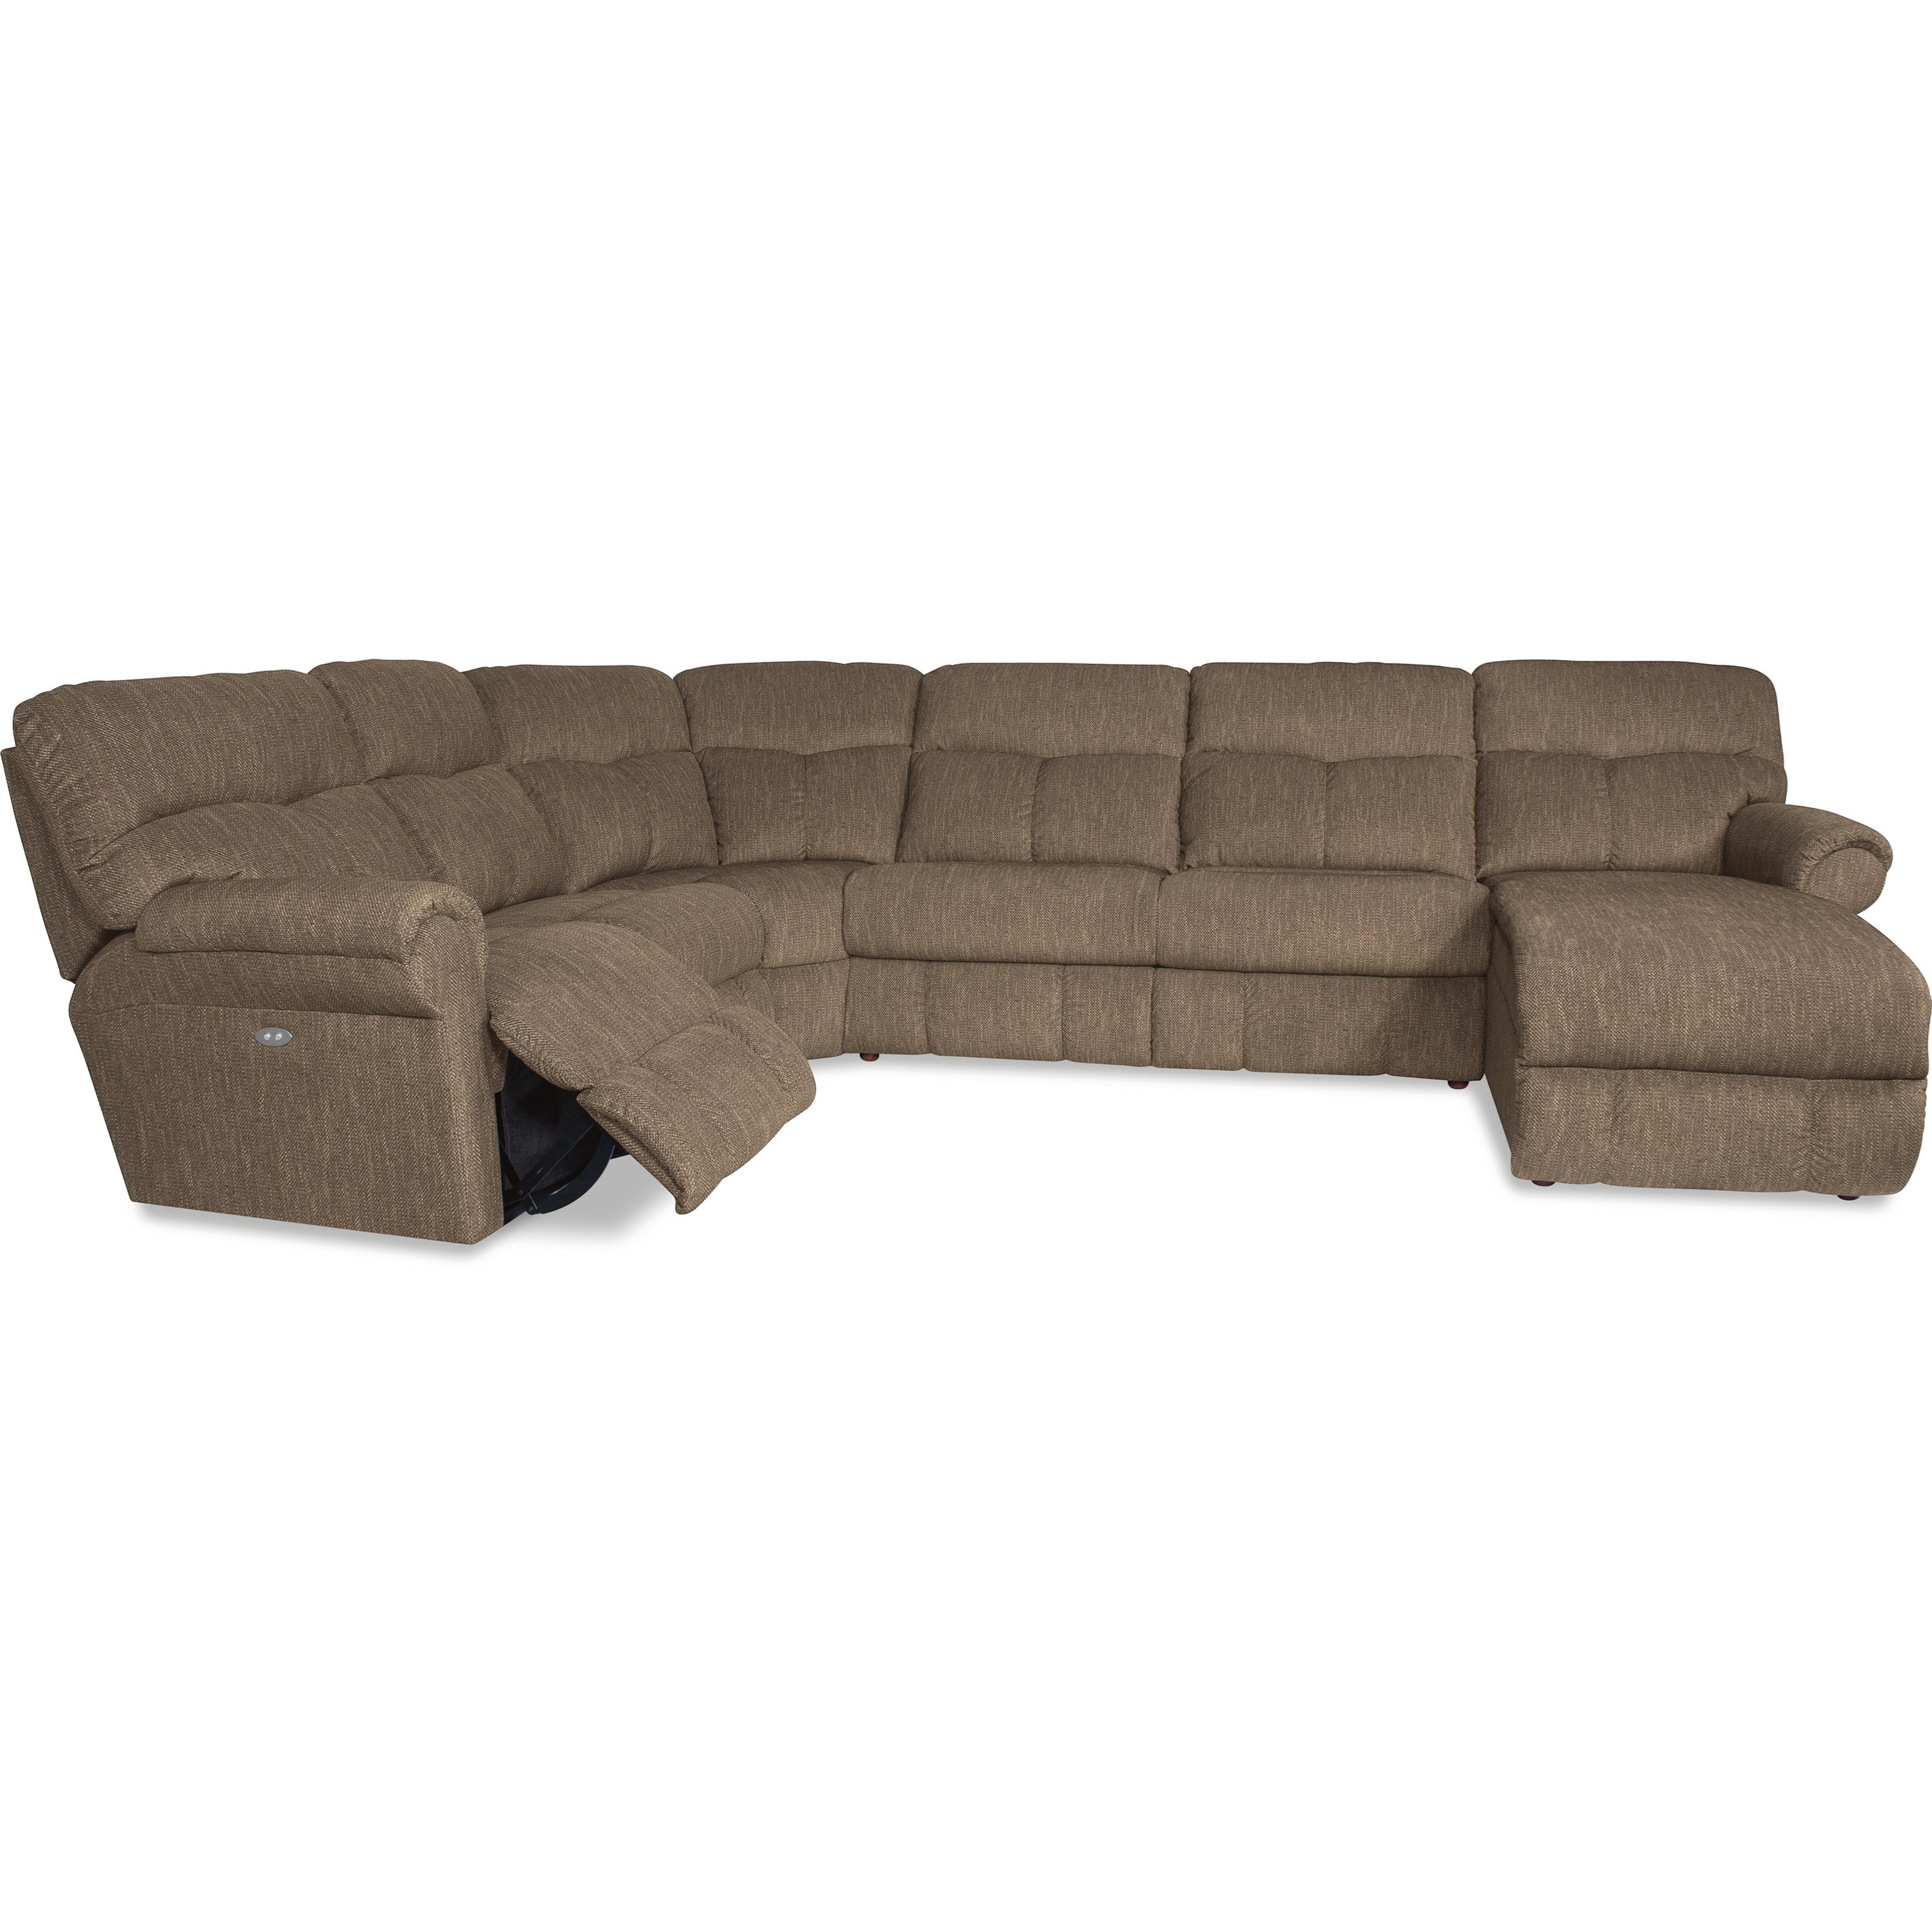 La z boy sheldon casual four piece reclining sectional for 4 piece sectional sofa with chaise